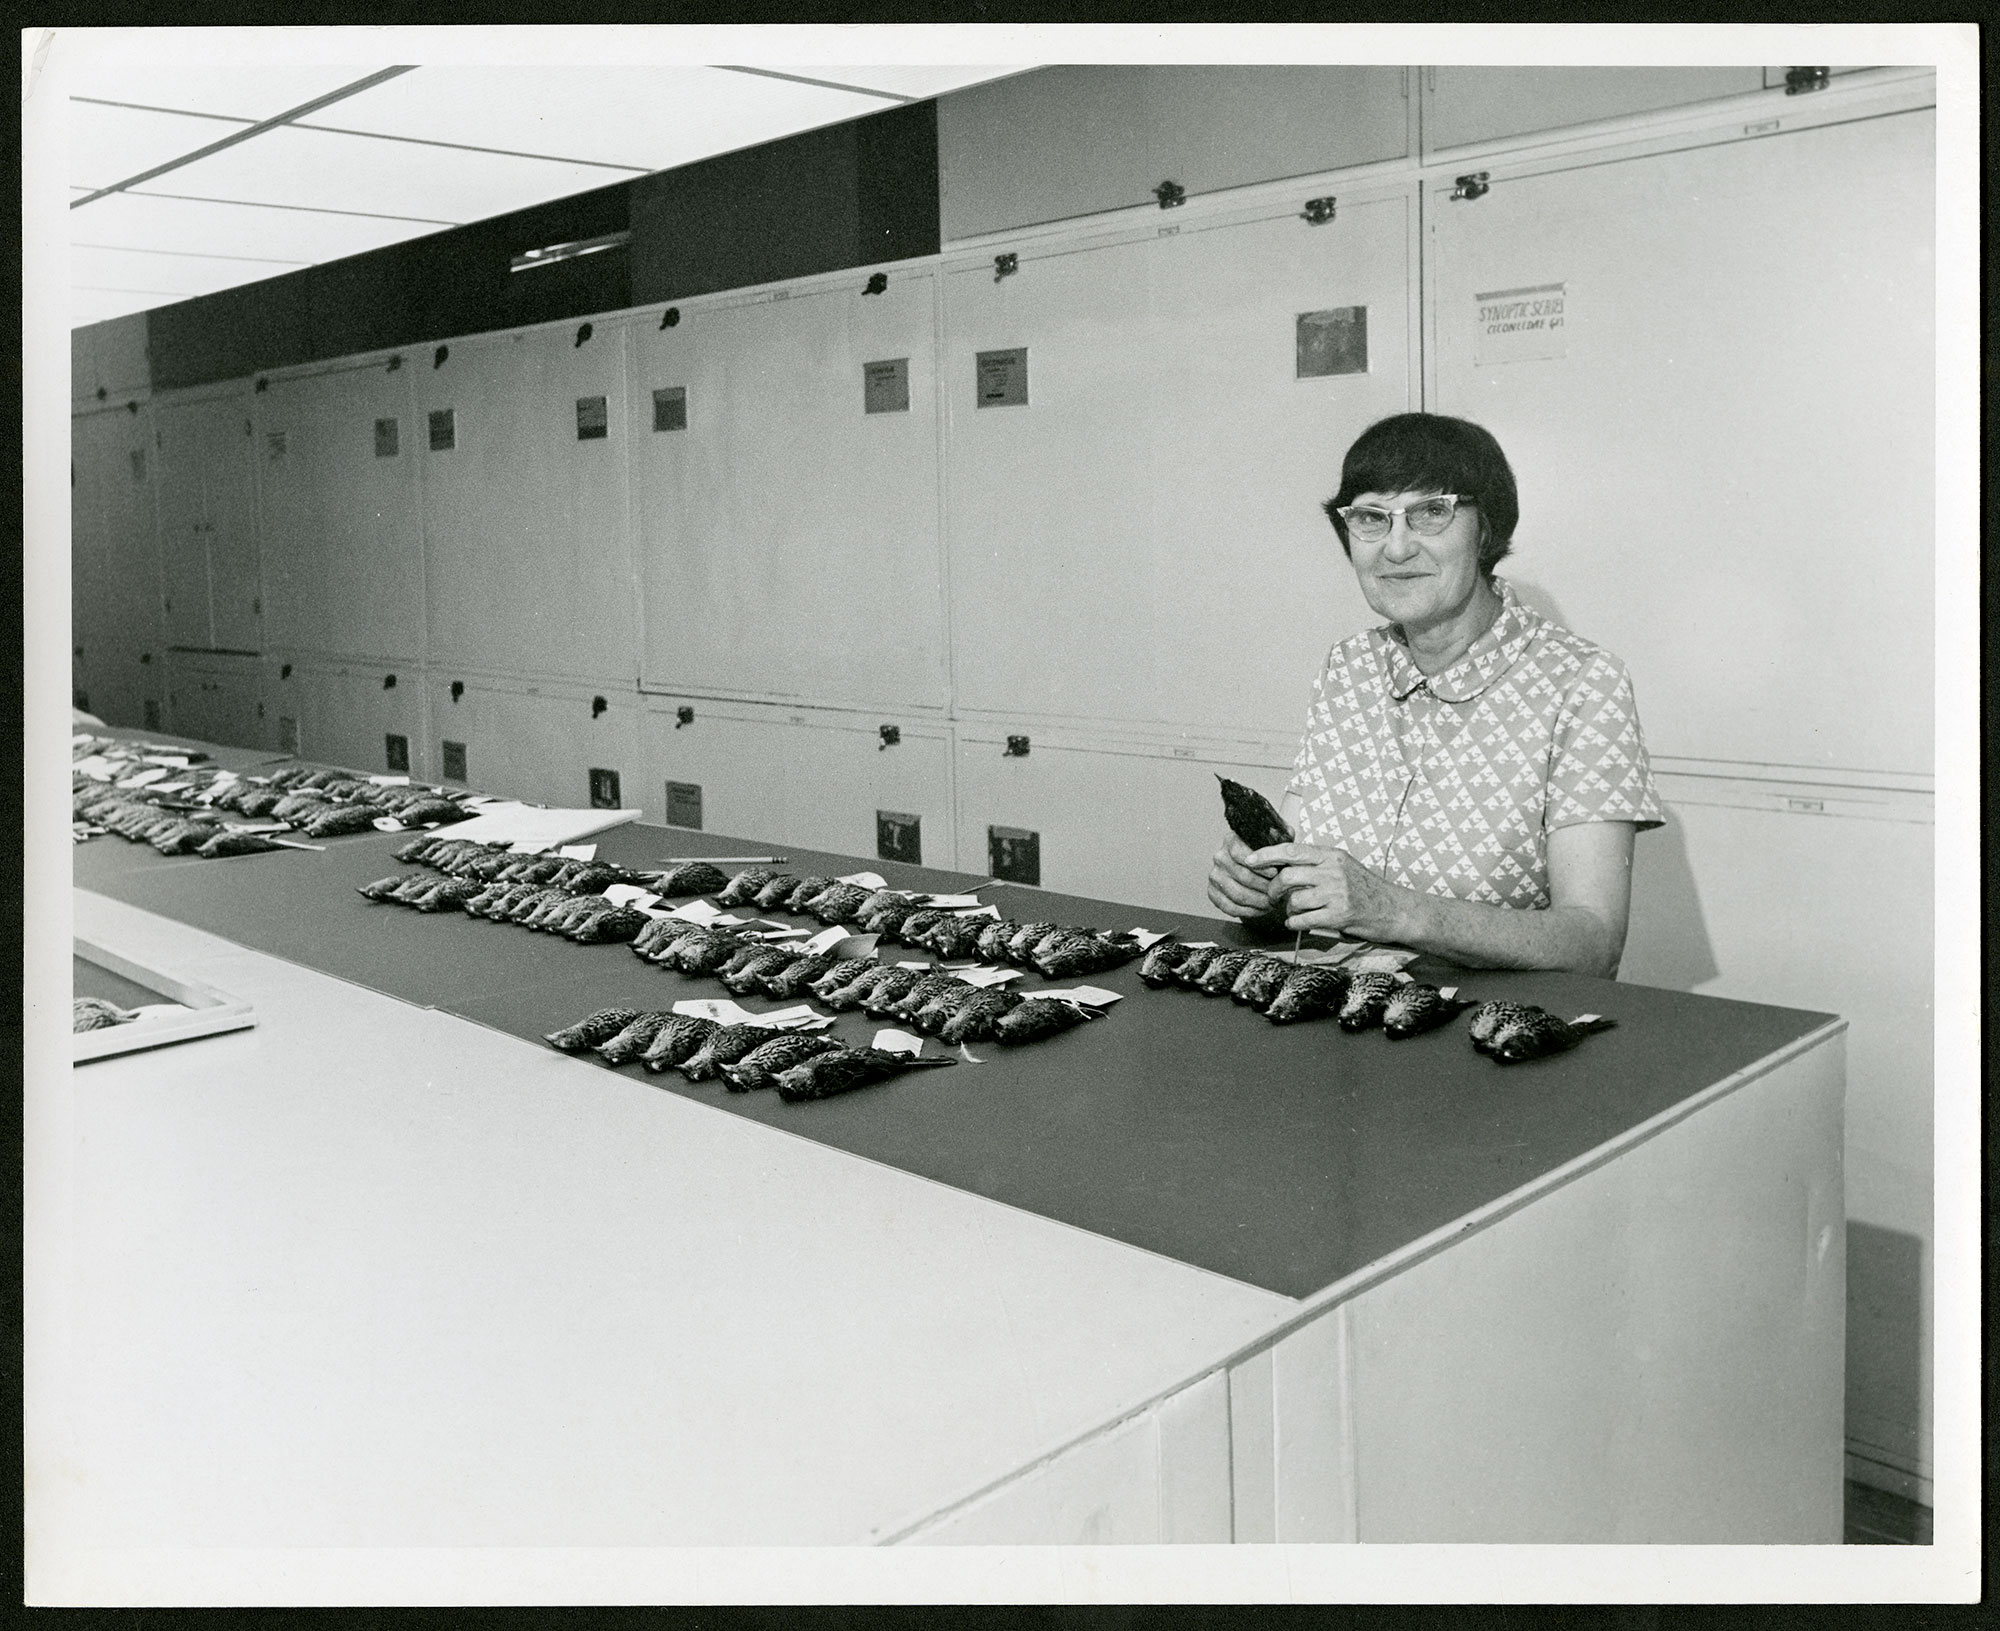 Ornithologist Roxie Laybourne in Birds Division with dozens of a single species of songbird laid out